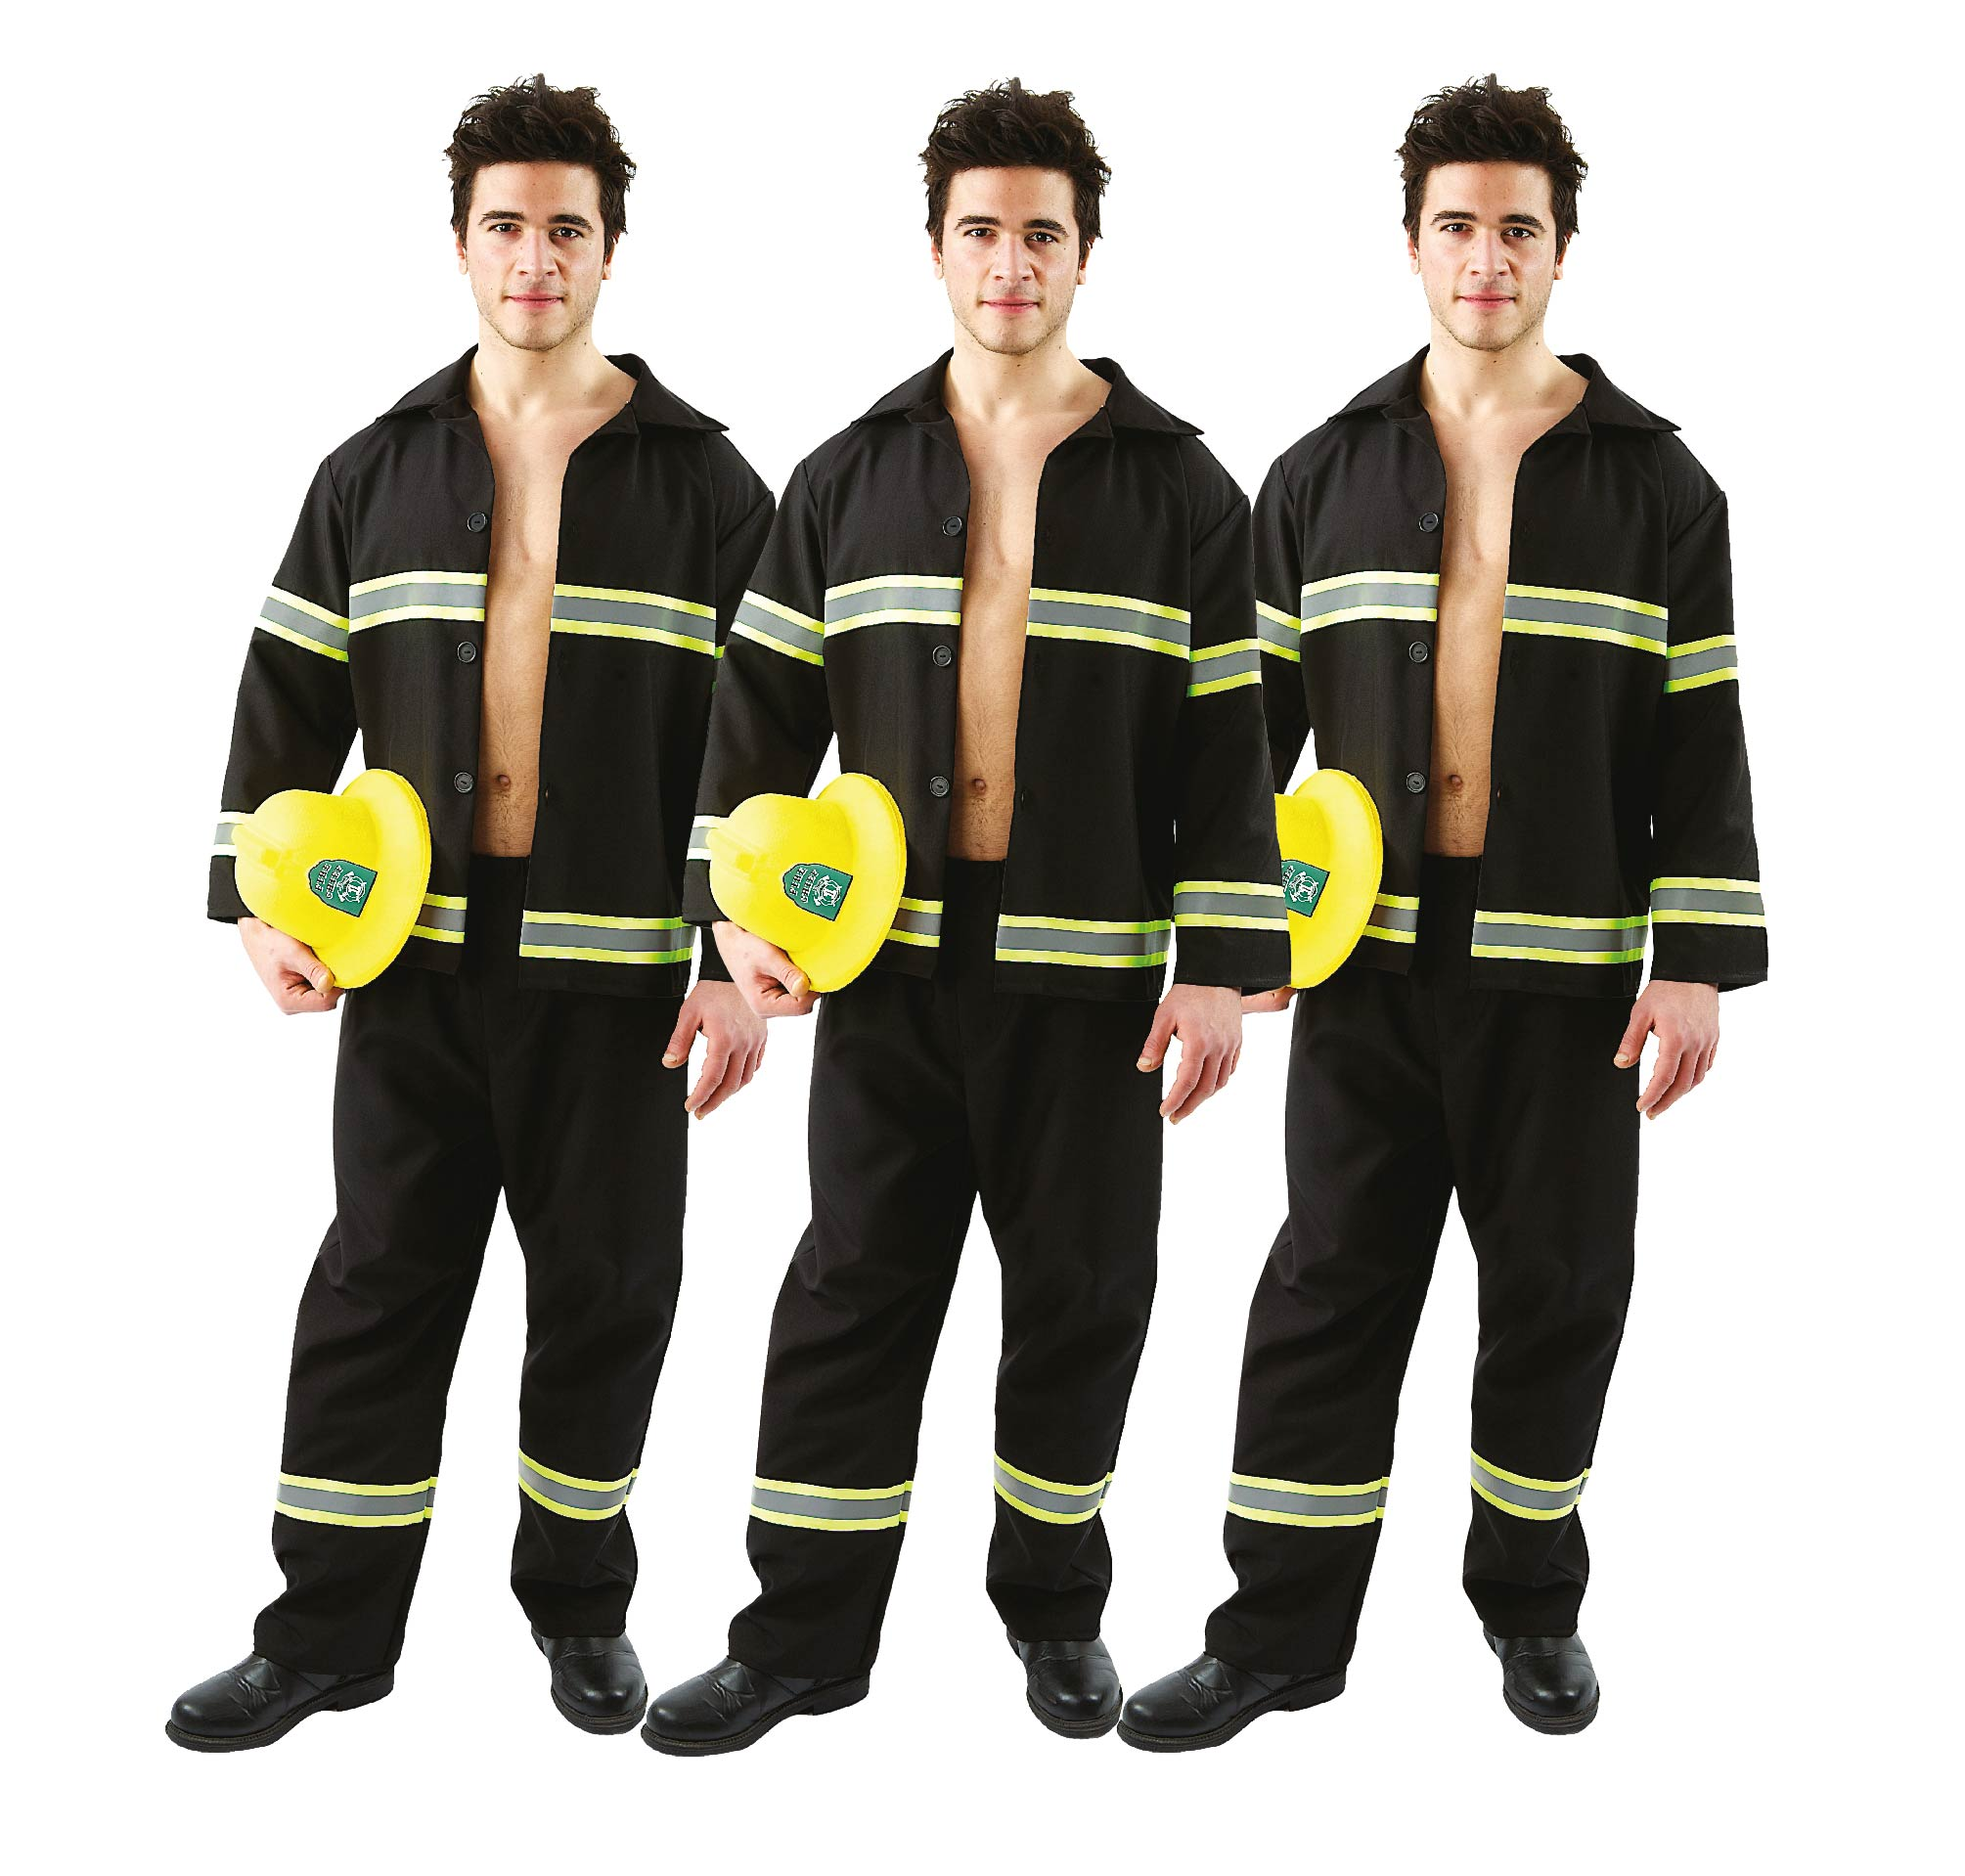 Men wearing matching Fireman costumes for group fancy dress.